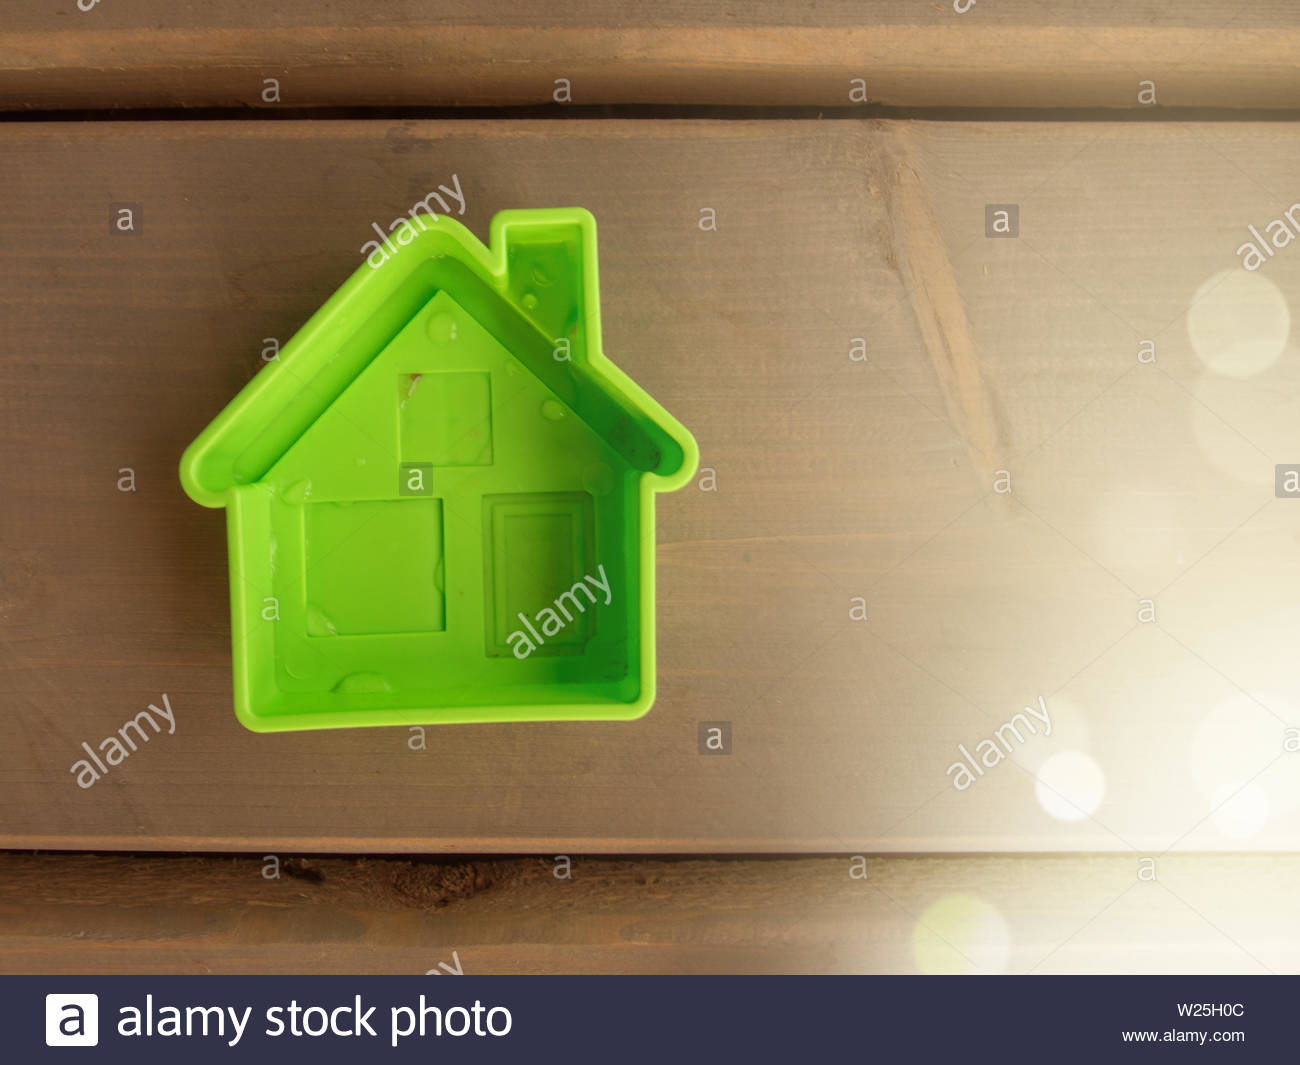 Toy House Template Stock Photos & Toy House Template Stock Images